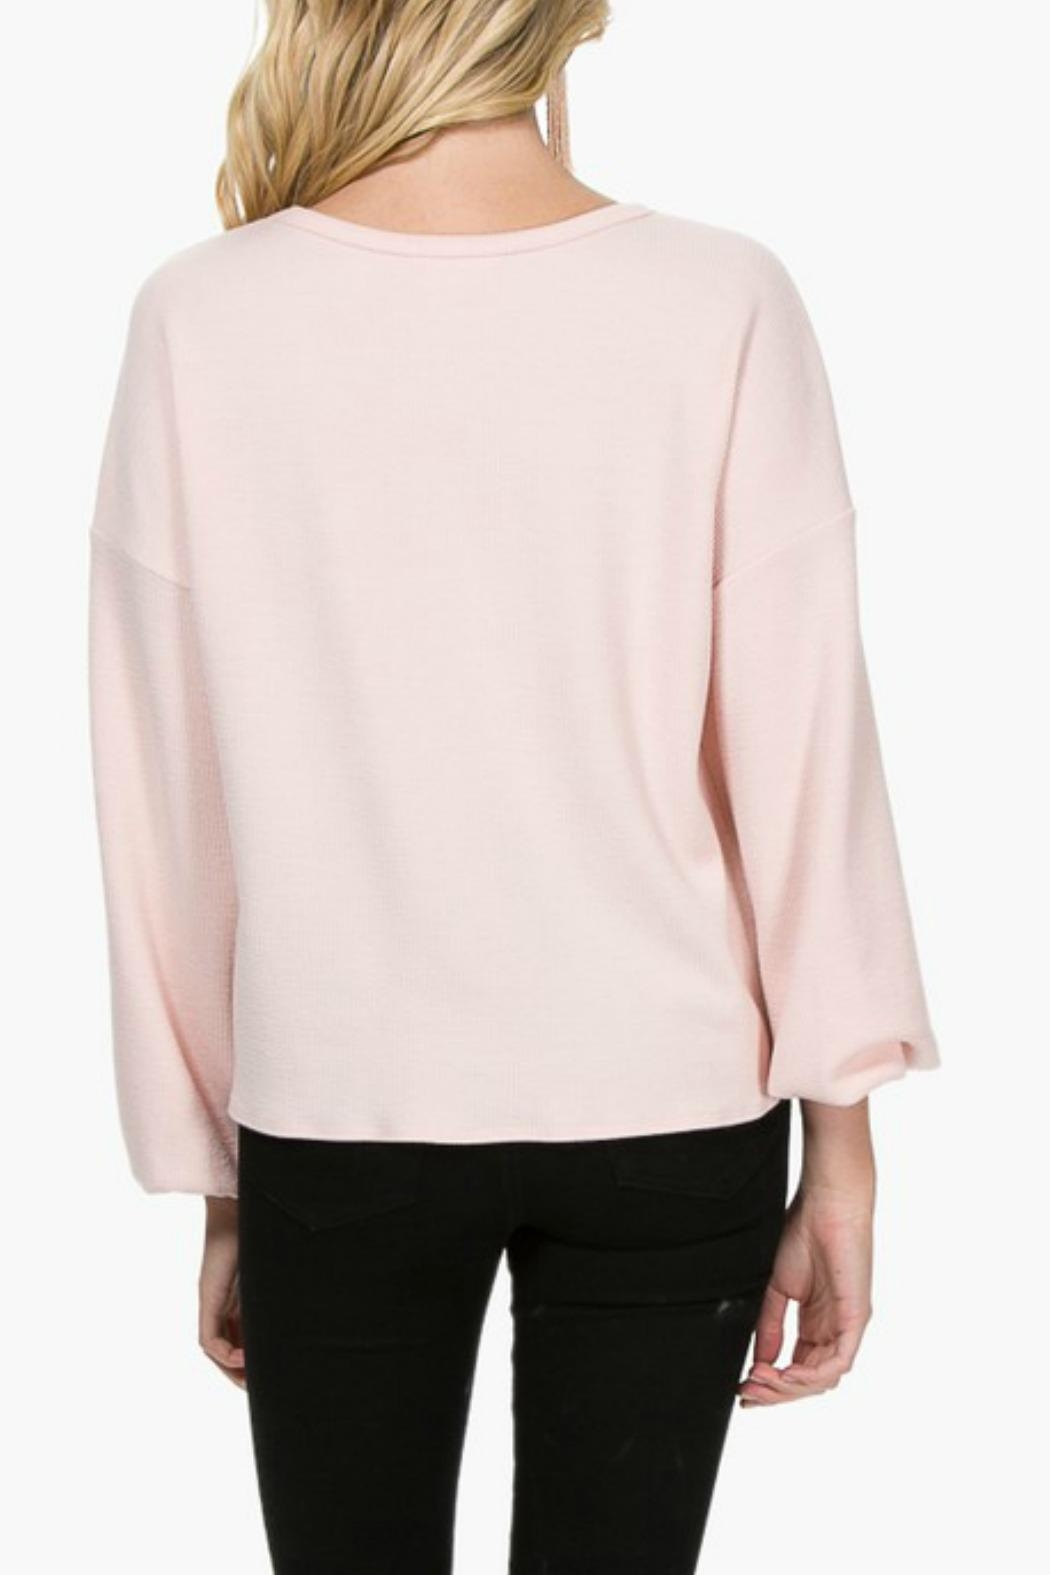 Everly Front-Tie Knit Top - Back Cropped Image